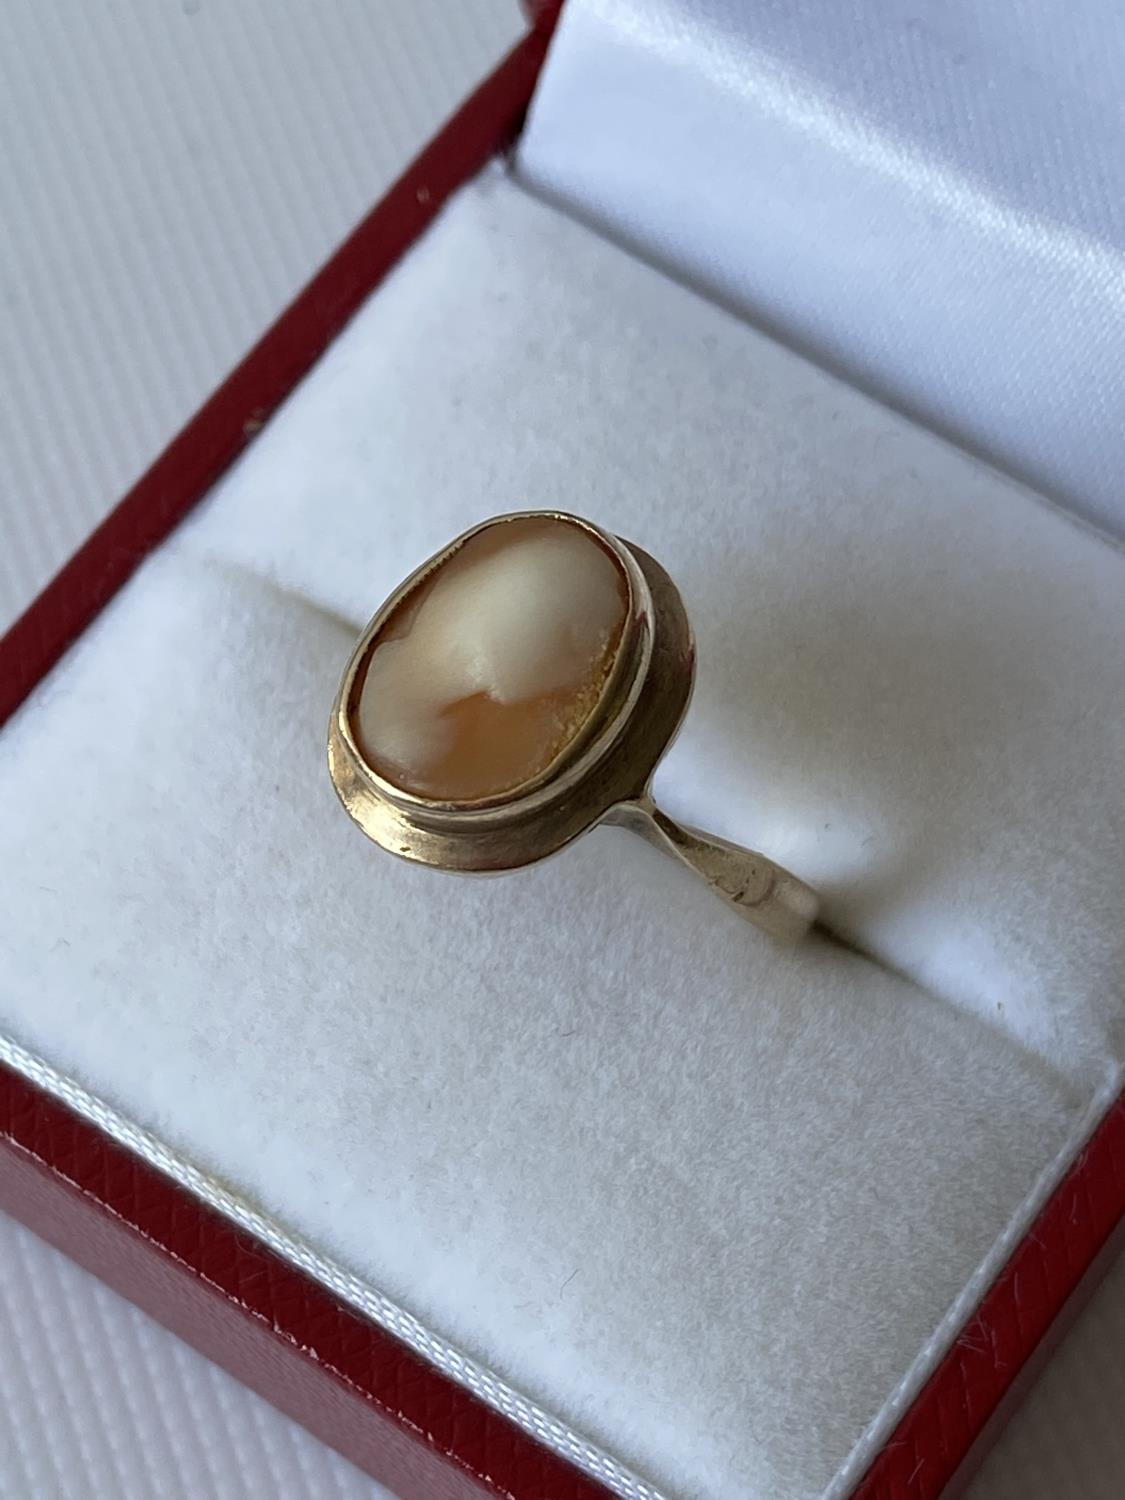 An antique 9ct gold & cameo carved ring [size I] [2.27g] - Image 2 of 6